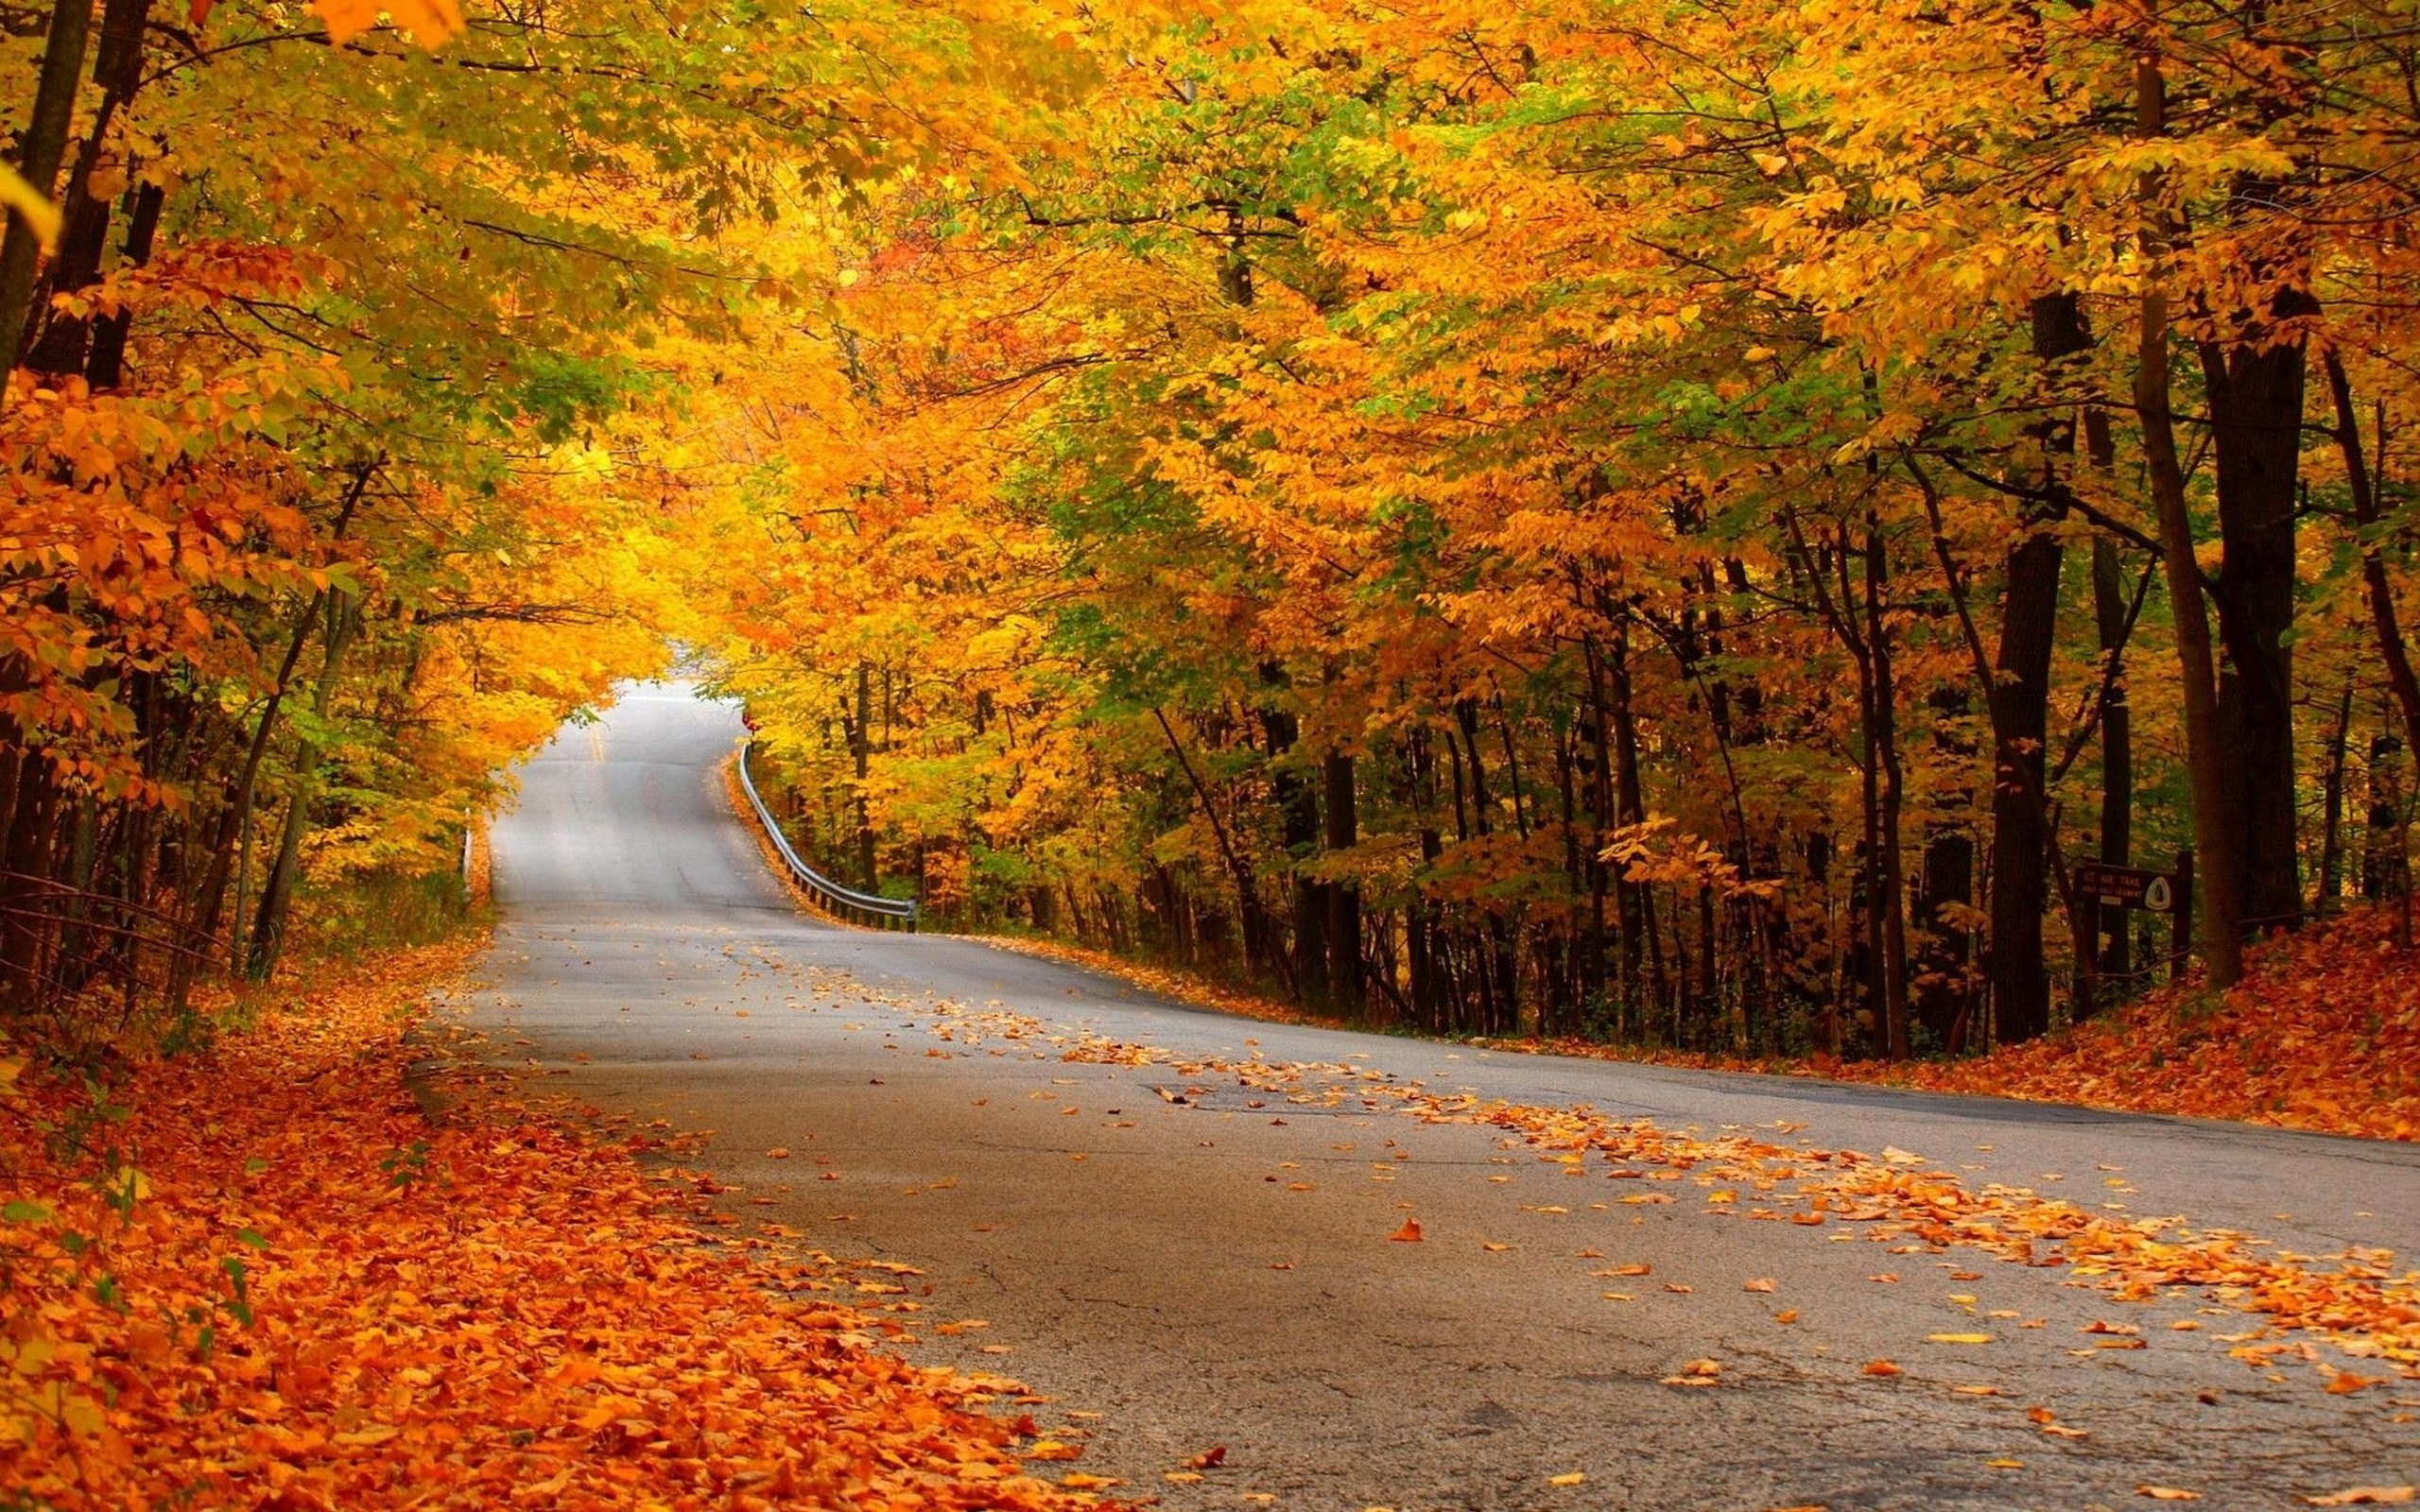 Road, forest, autumn, yellow leaves